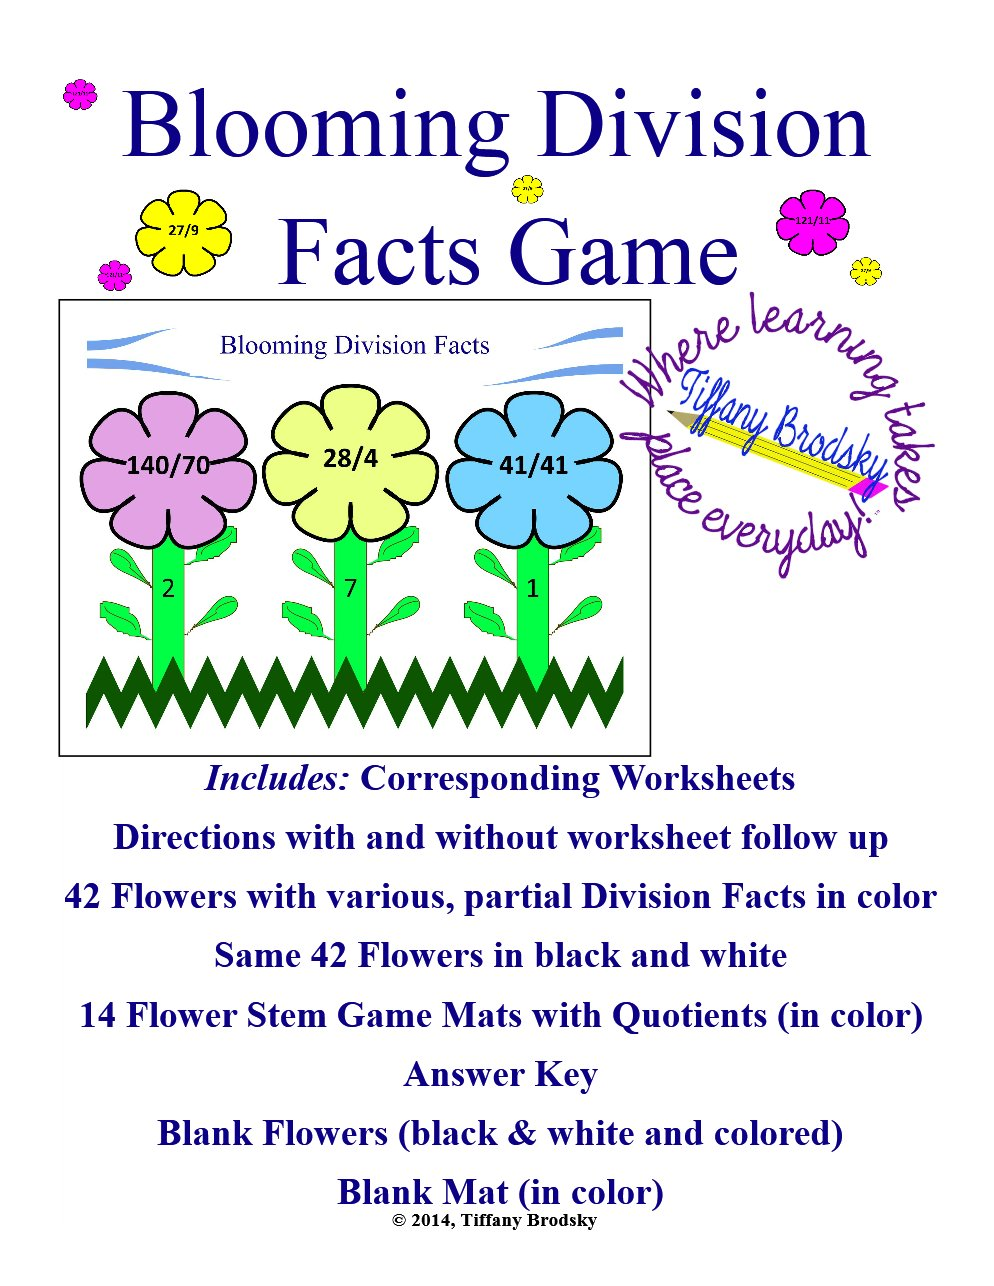 Blooming Division Facts Game for Whole Class, Math Center, Small Group, etc. in PDF